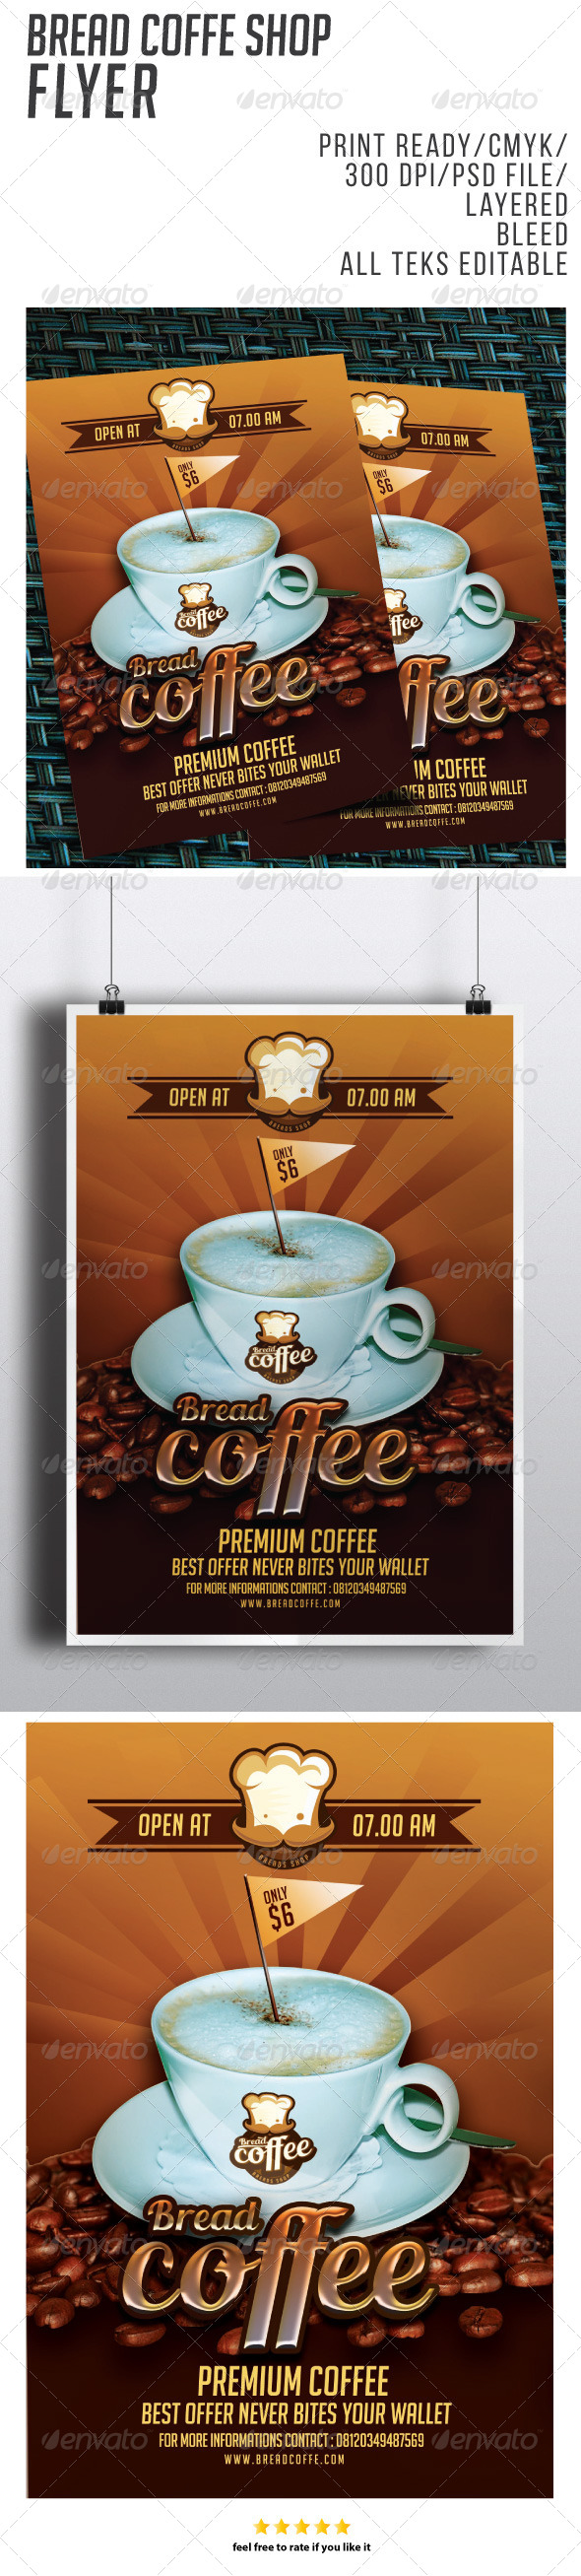 GraphicRiver Bread Coffe Flyer 8454401